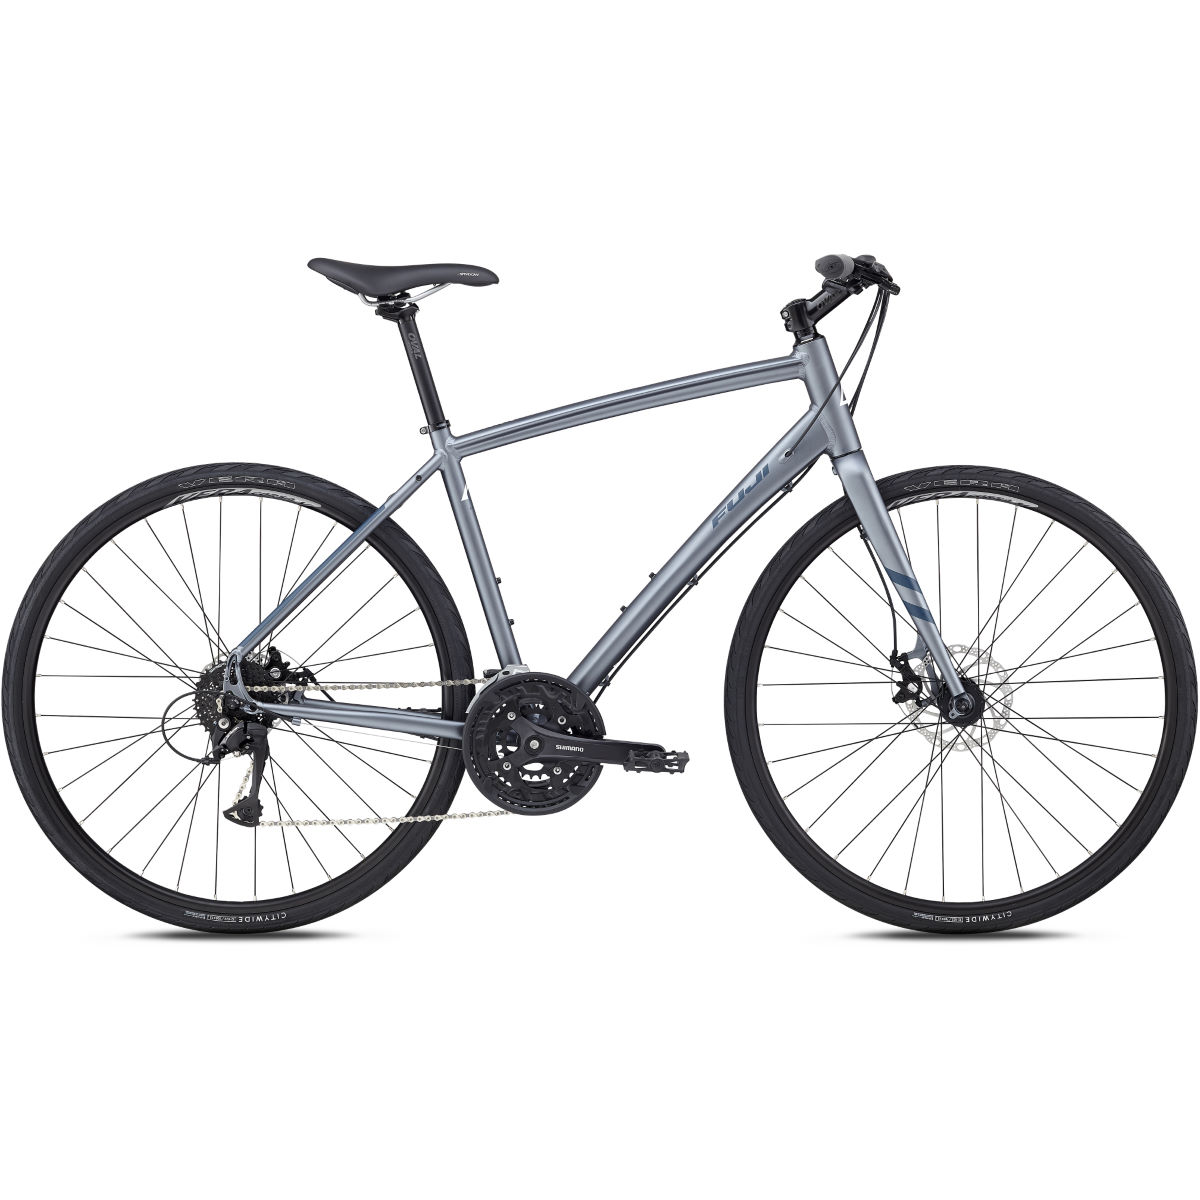 Fuji Absolute 1.7 City Bike - Bicicletas de ciudad e híbridas